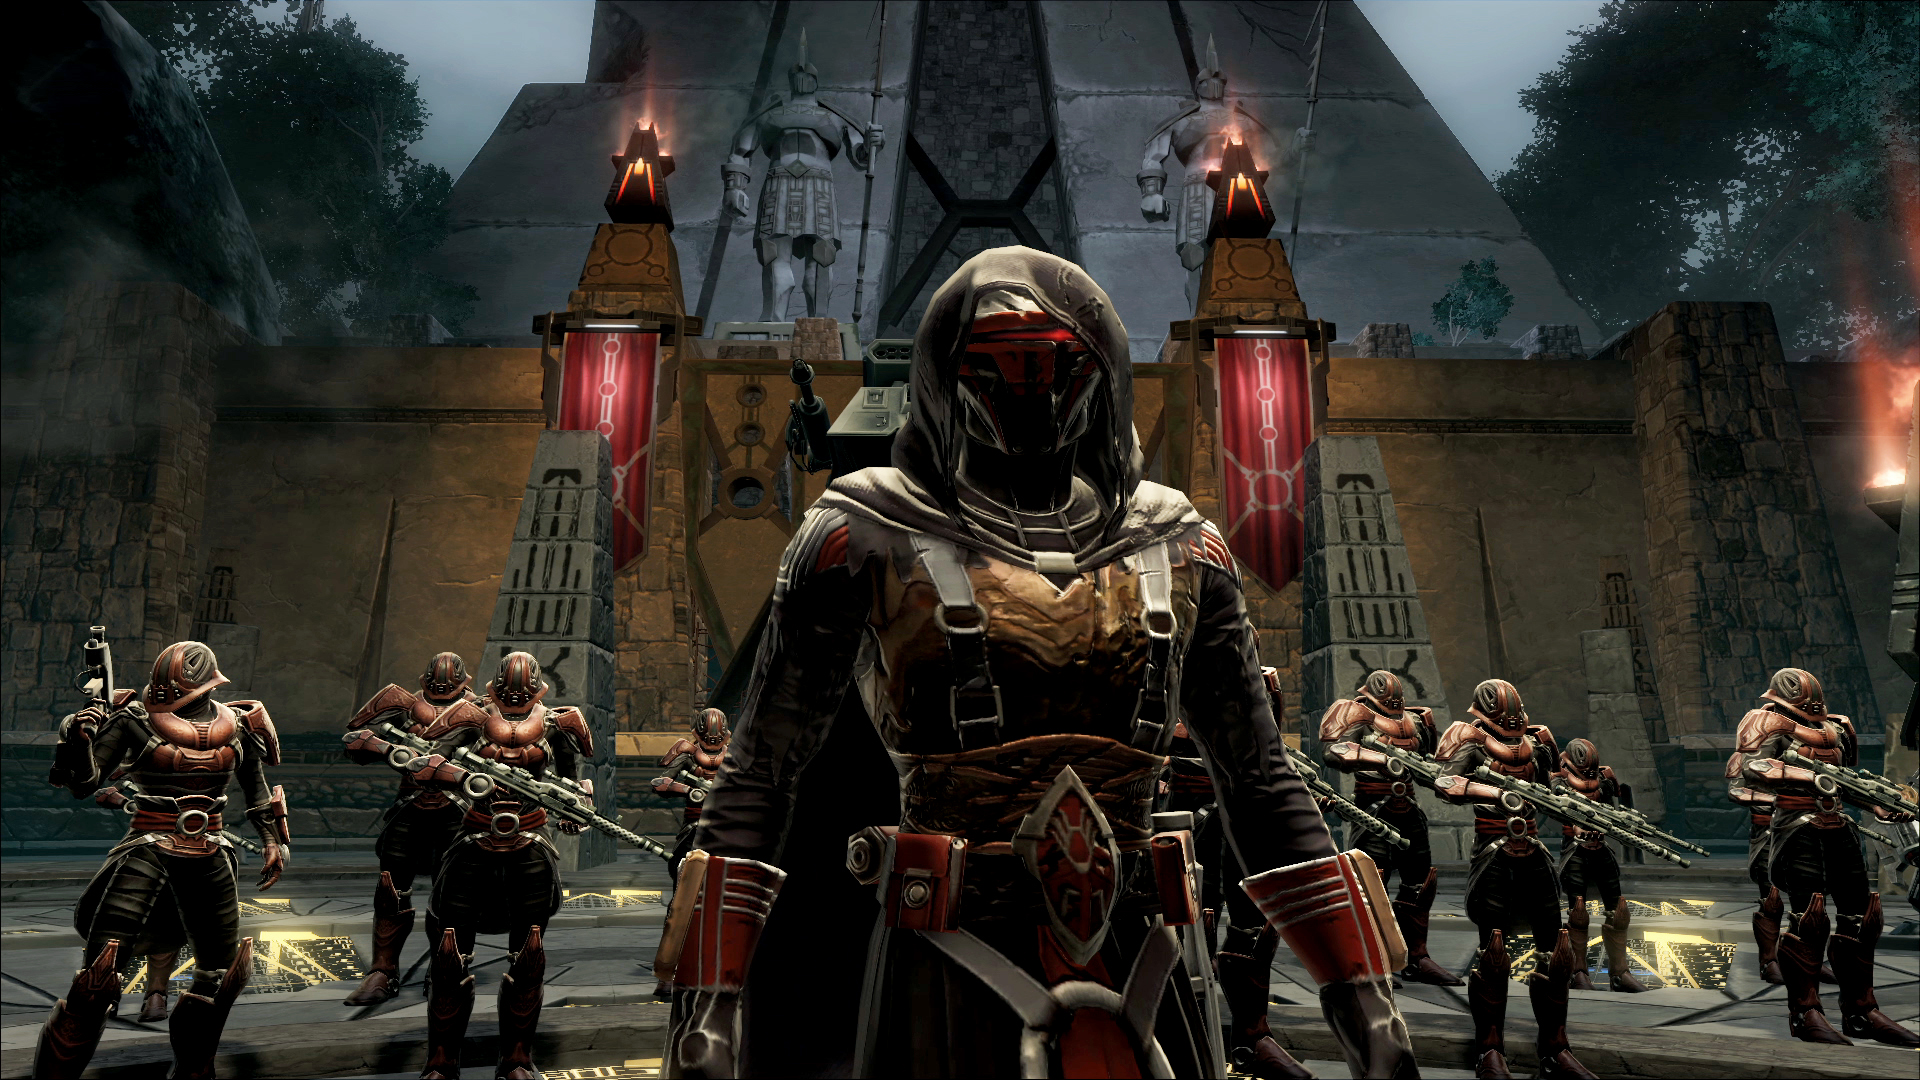 Star Wars: The Old Republic - Shadow of Revan introduces a new character